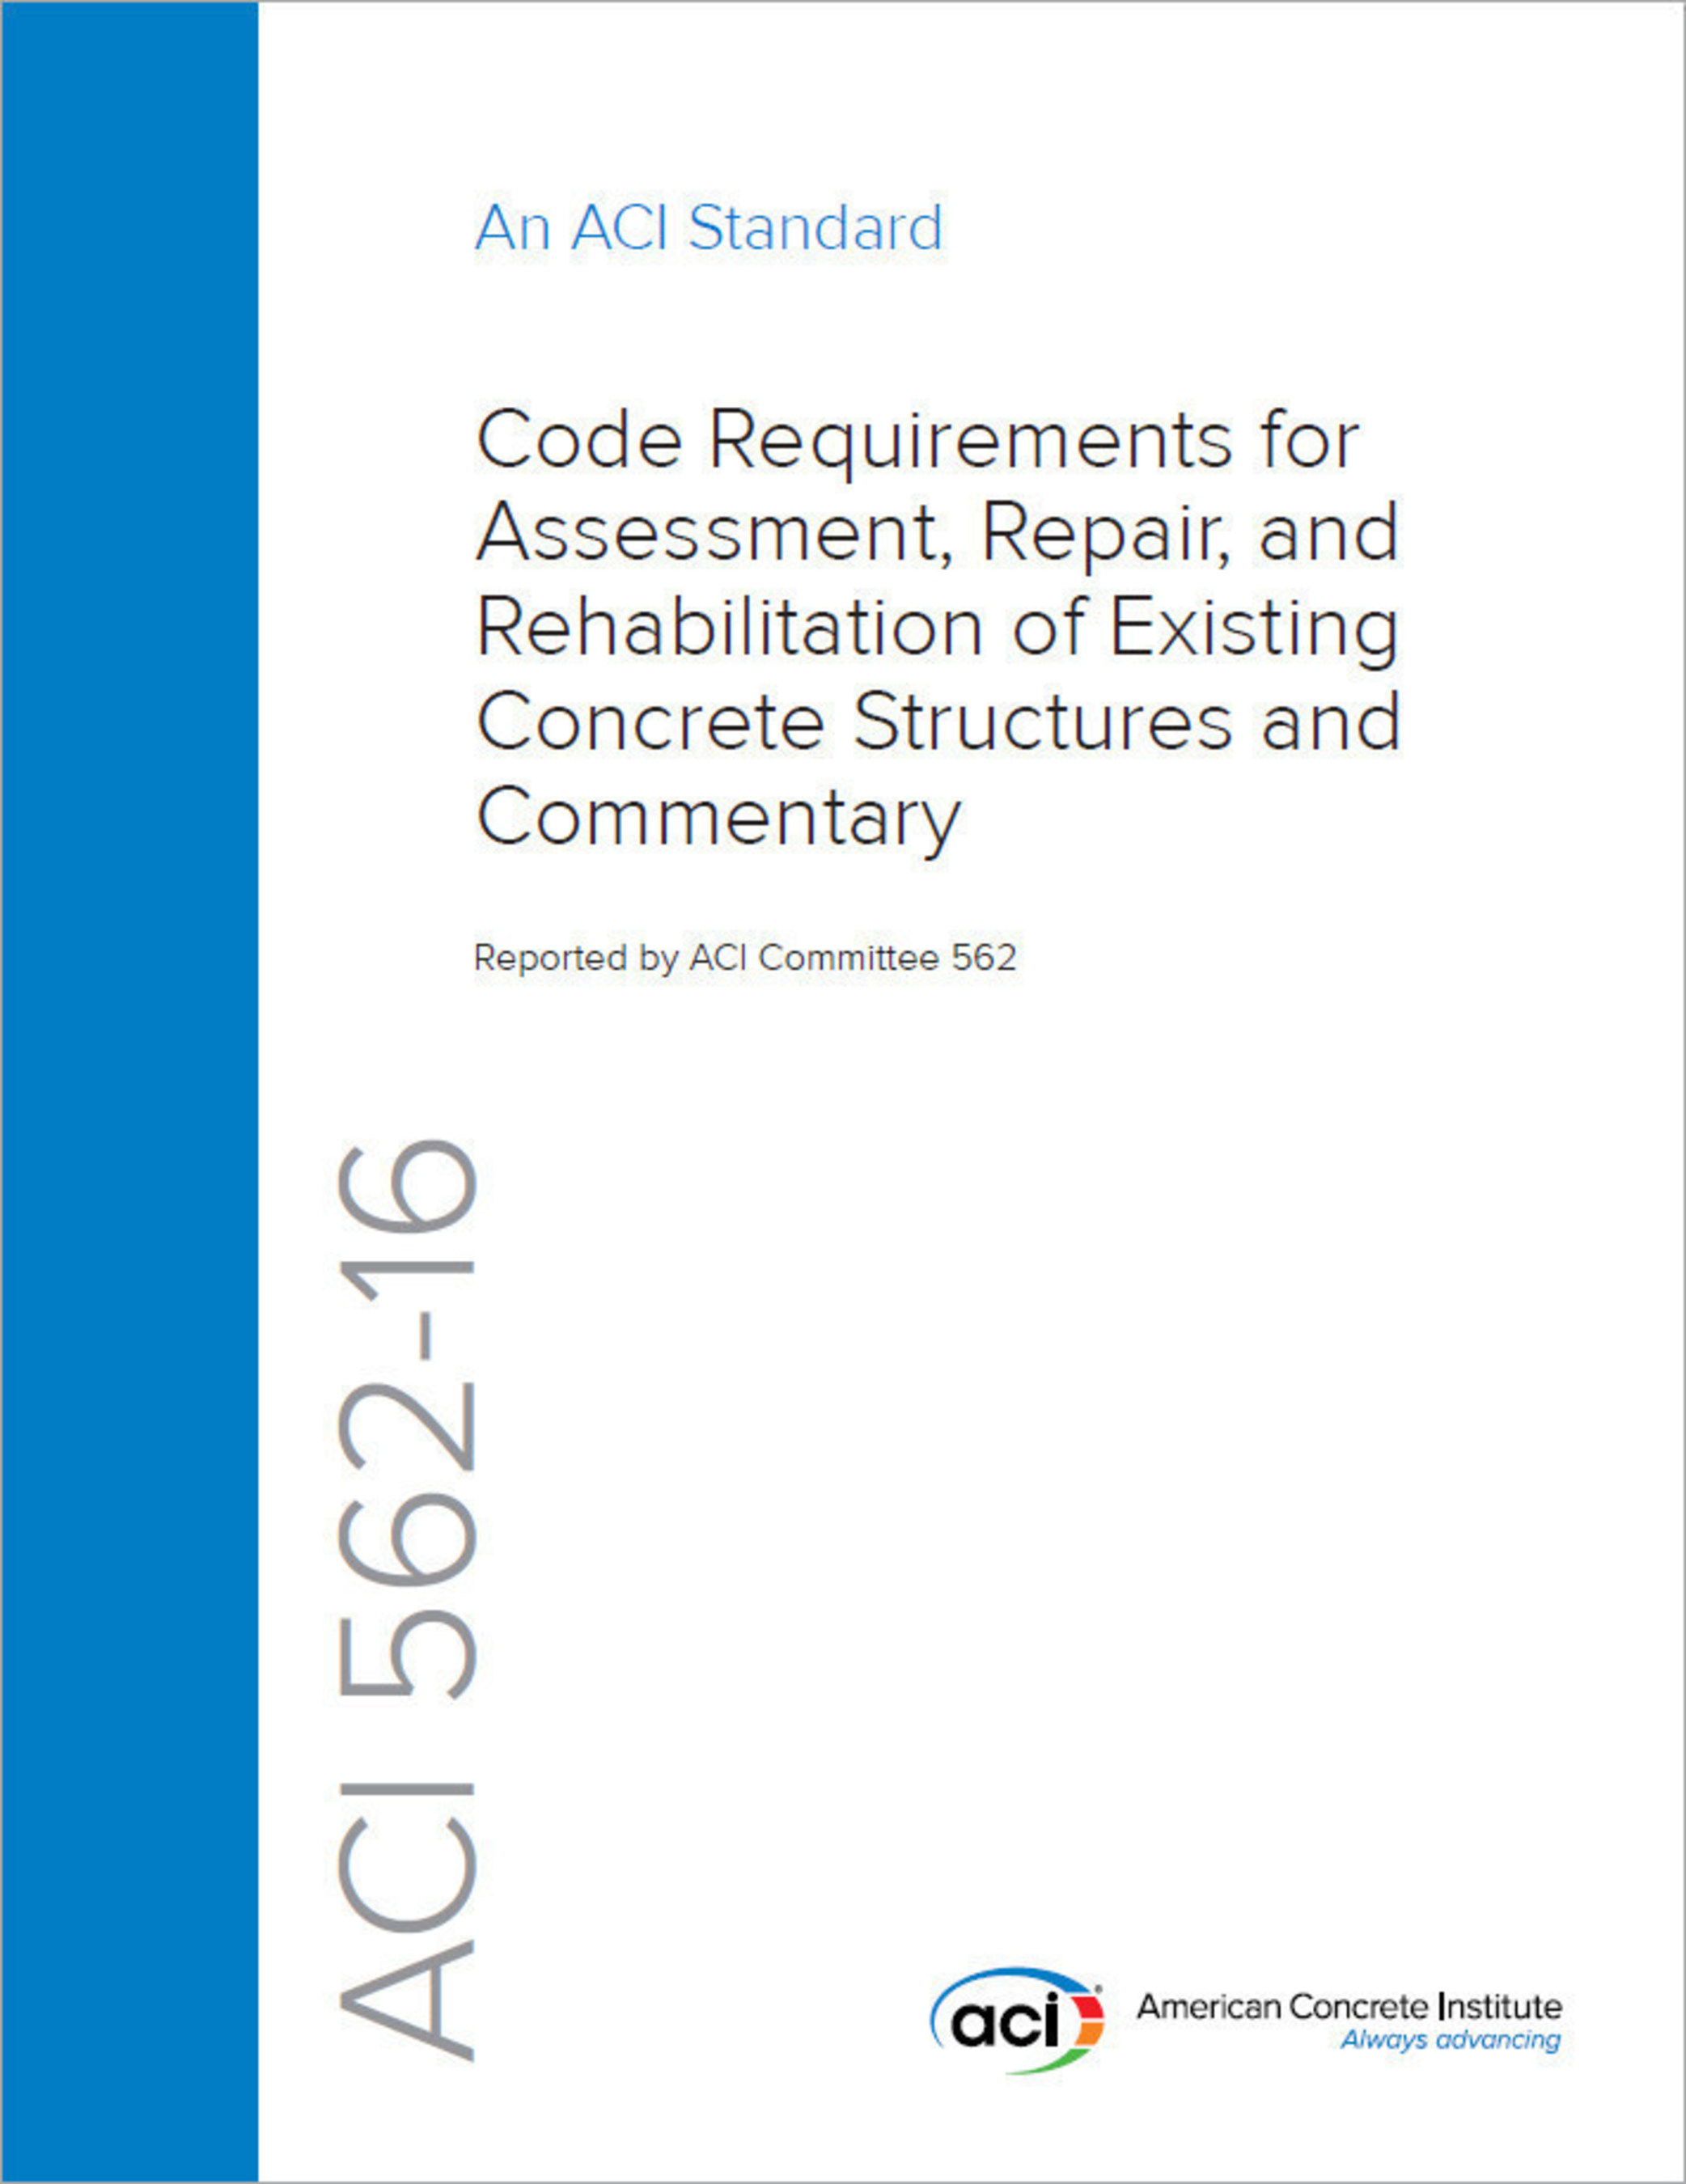 Cover image for ACI 562-16: Code Requirements for Evaluation, Repair, and Rehabilitation of Concrete Buildings and Commentary.